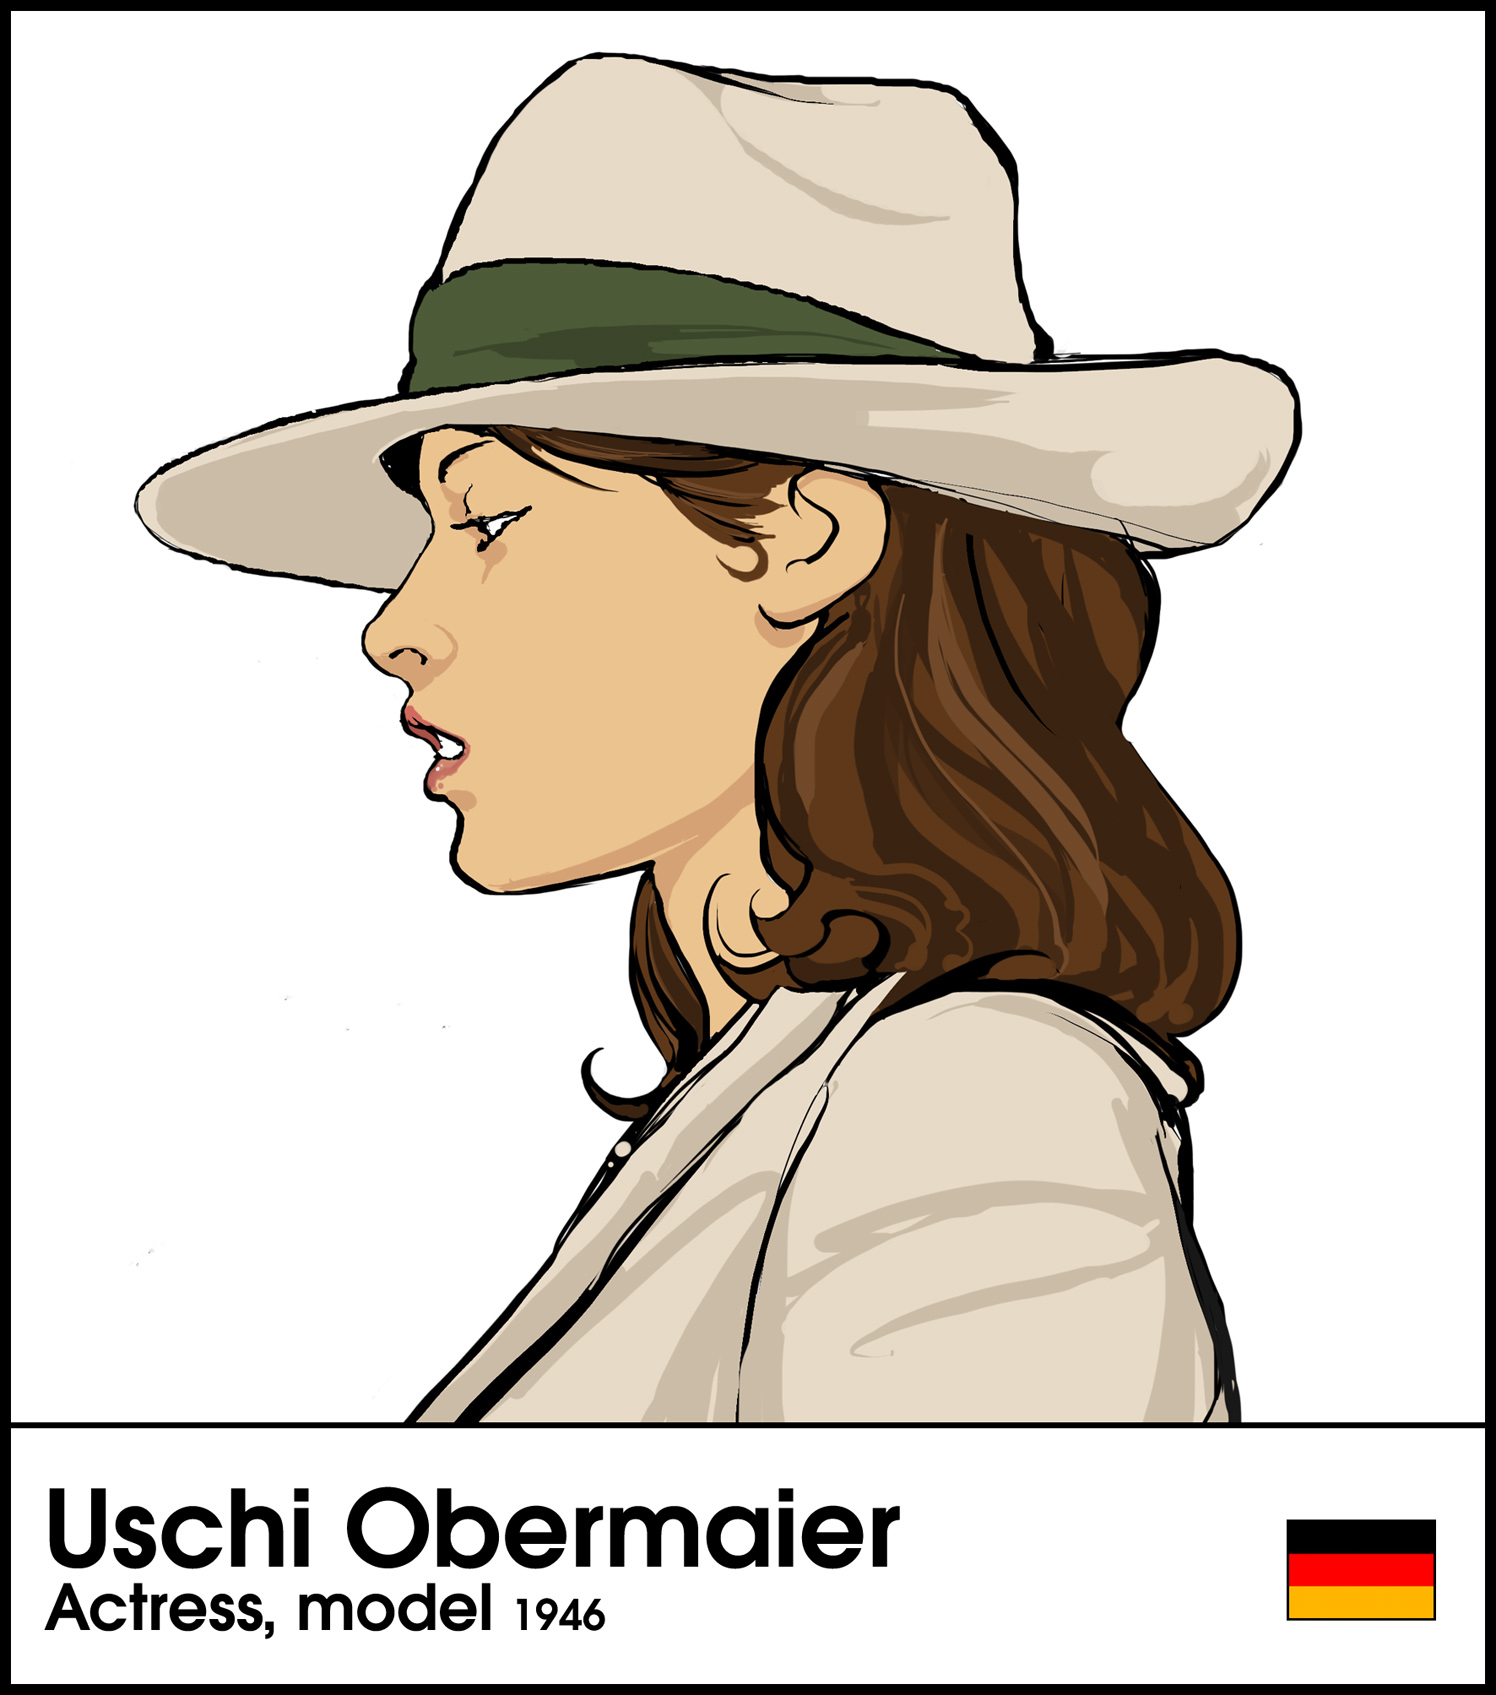 Uschi Obermaier Actress 1946